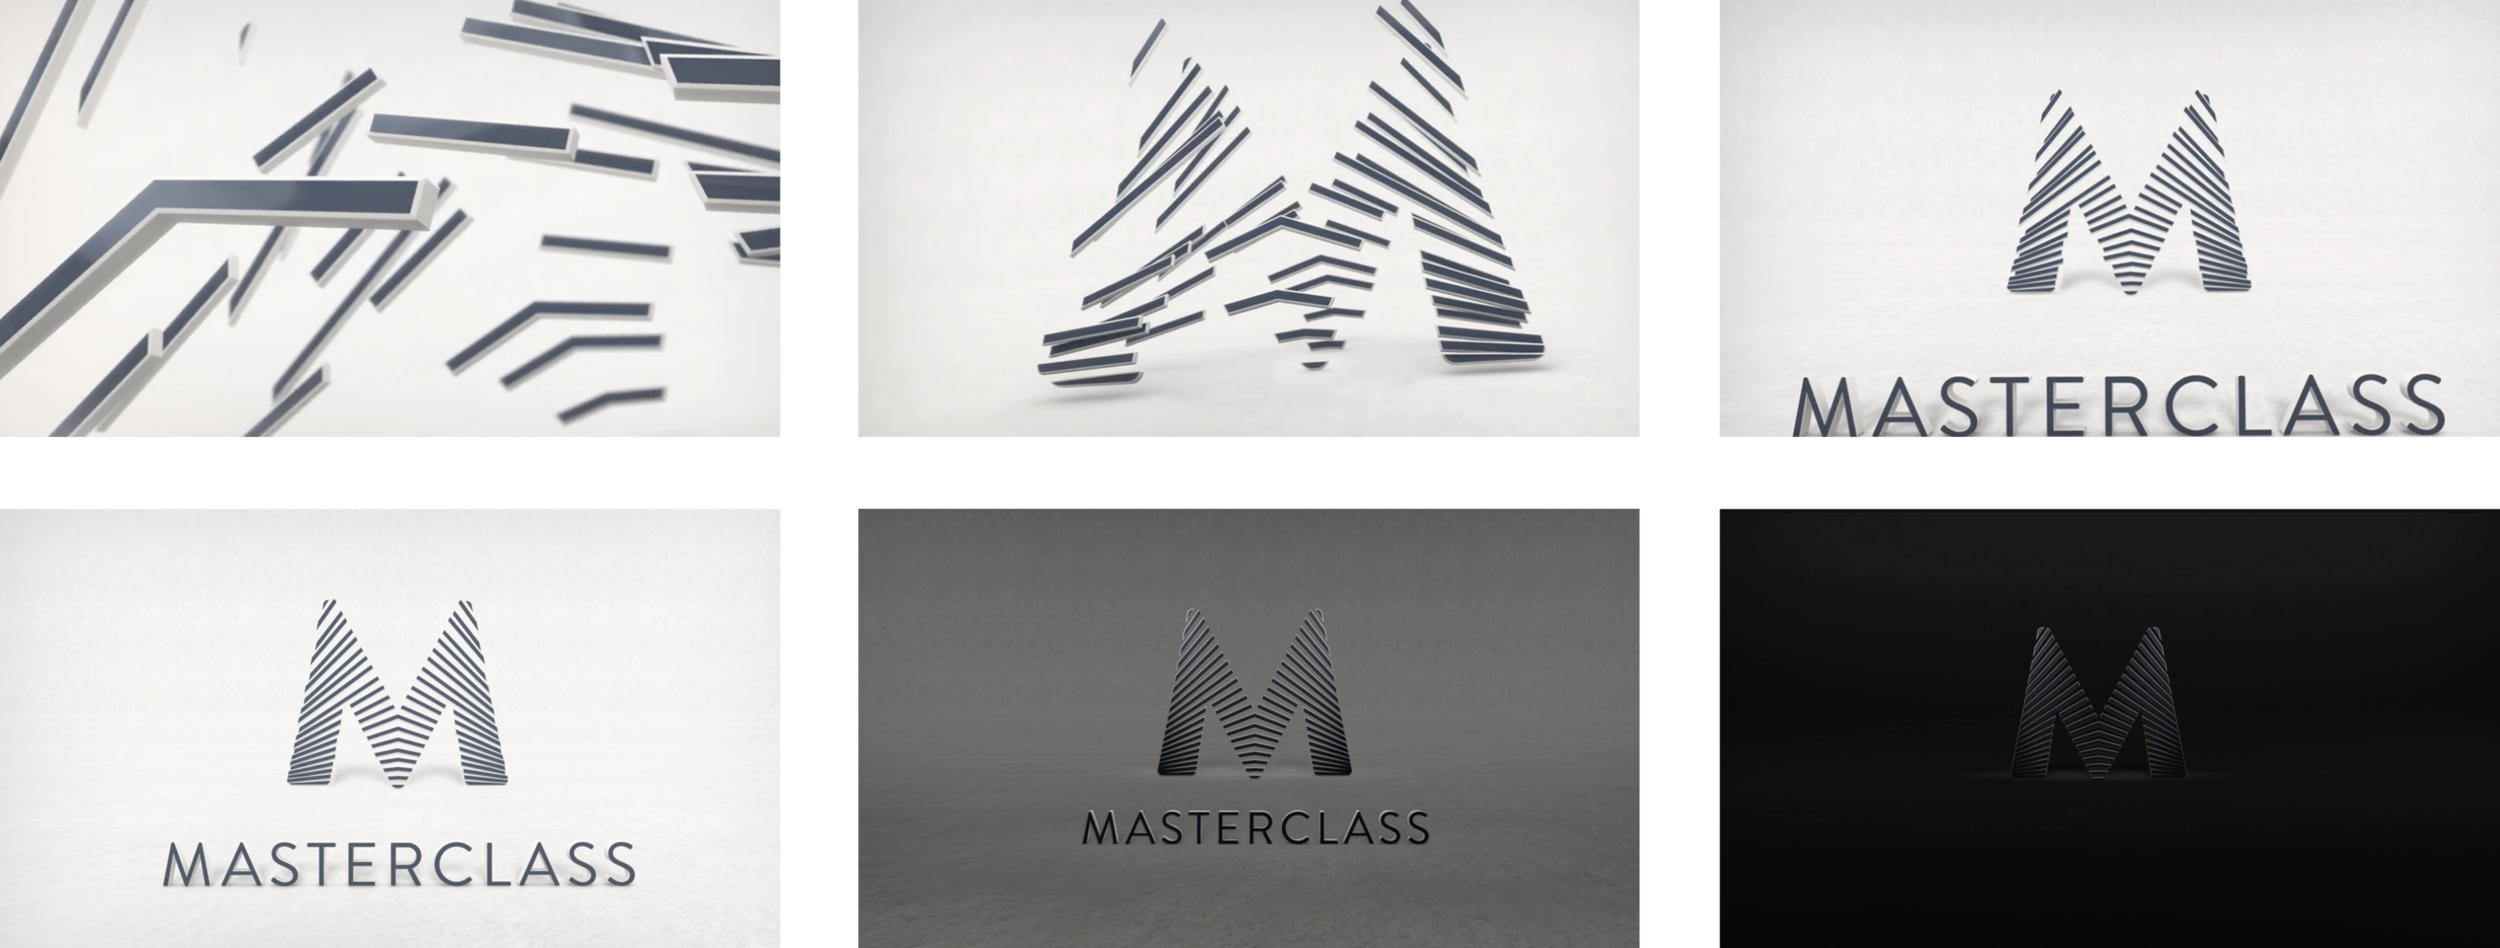 Stills for the MasterClass branded introduction